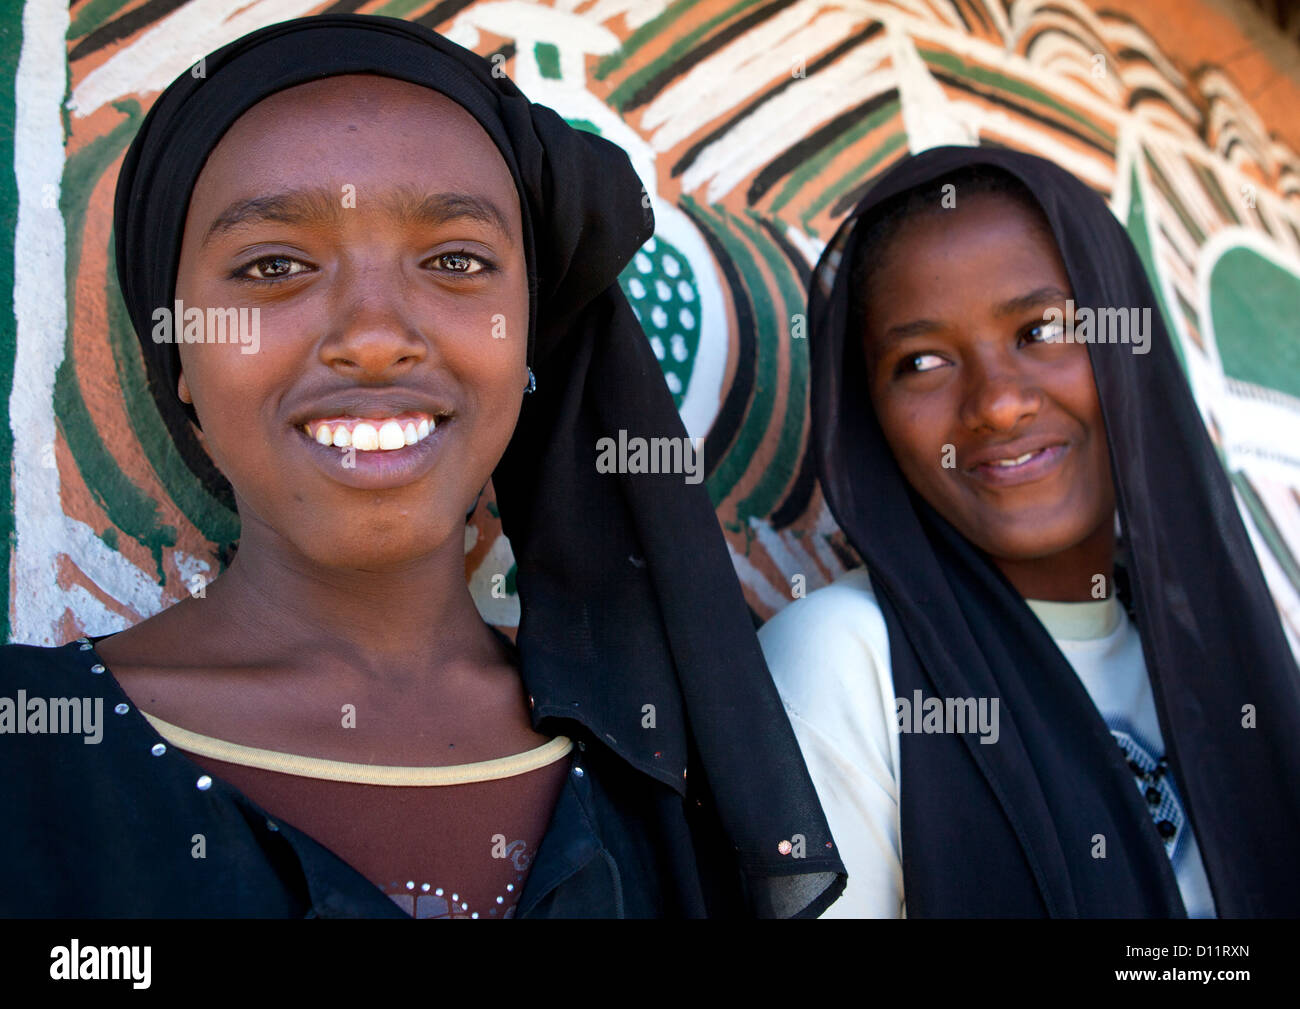 Portrait Of Muslim Ethiopian Girls With Toothy Smiles And Black Veils Outside A Painted Tukul, Alaba, Ethiopia - Stock Image